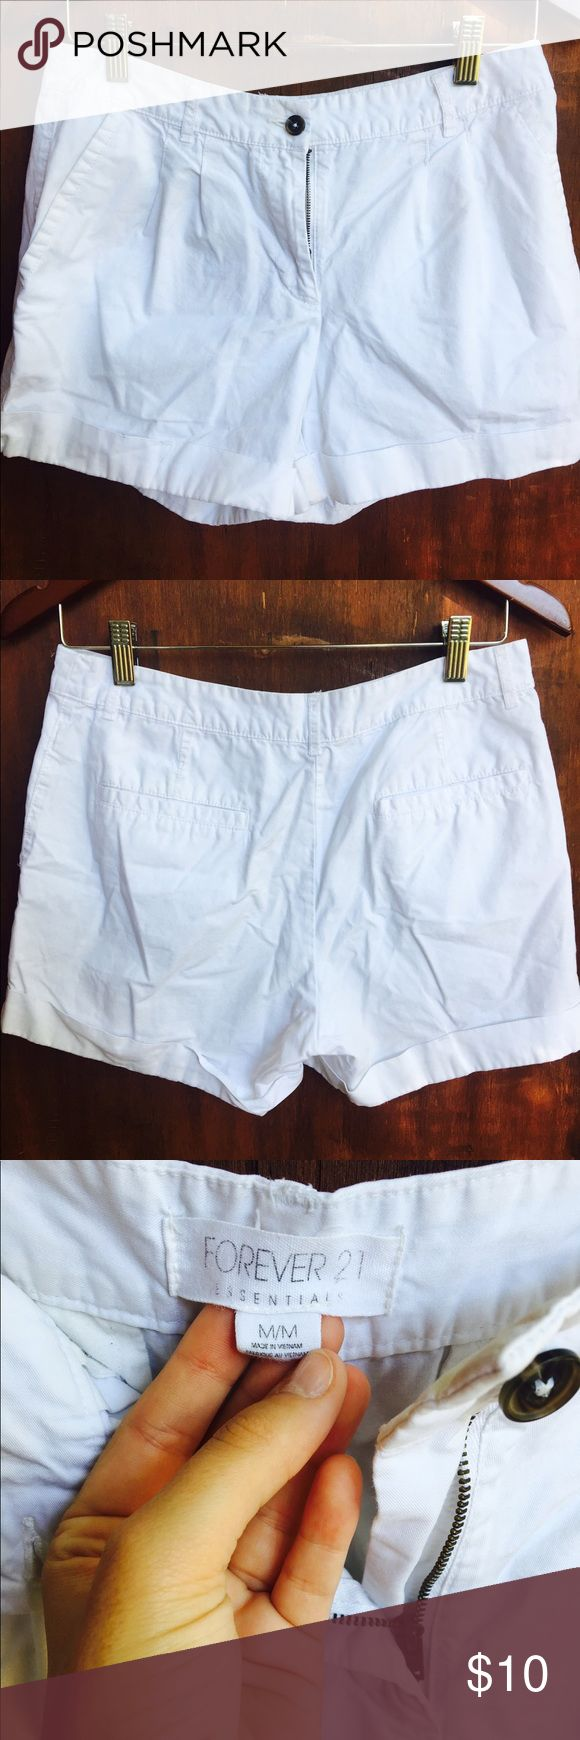 White Shorts ONE WEEK FLASH SALE ‼️ on 5/17 i am taking EVERYTHING to the local Platos and donating what they dont take. which means im ACCEPTING most OFERS!              NOW OR NEVER.                          BUNDLE this with another item to save! These are in great condition! Never put in the dryer. Smoke free pet free home. Theyre too big on me now. Cute and preppy white shorts. They have pockets and fit similar to the j crew chino shorts. Cheaper on Ⓜ️ercari Forever 21 Shorts